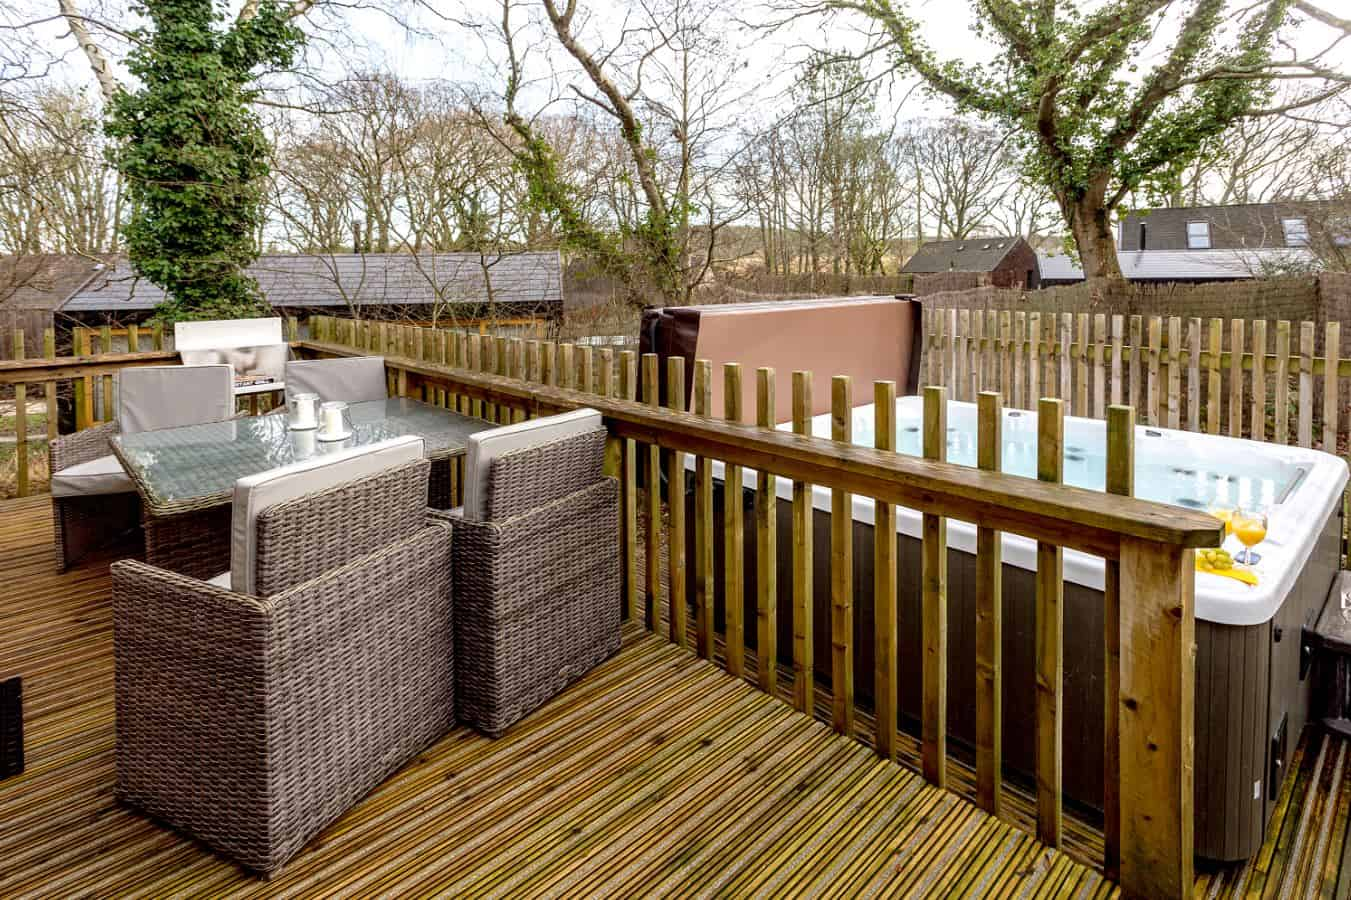 Enjoy birdsong as you unwind over an alfresco lunch or BBQ supper on your fully furnished decked terrace complete with your own private bubbling hot tub